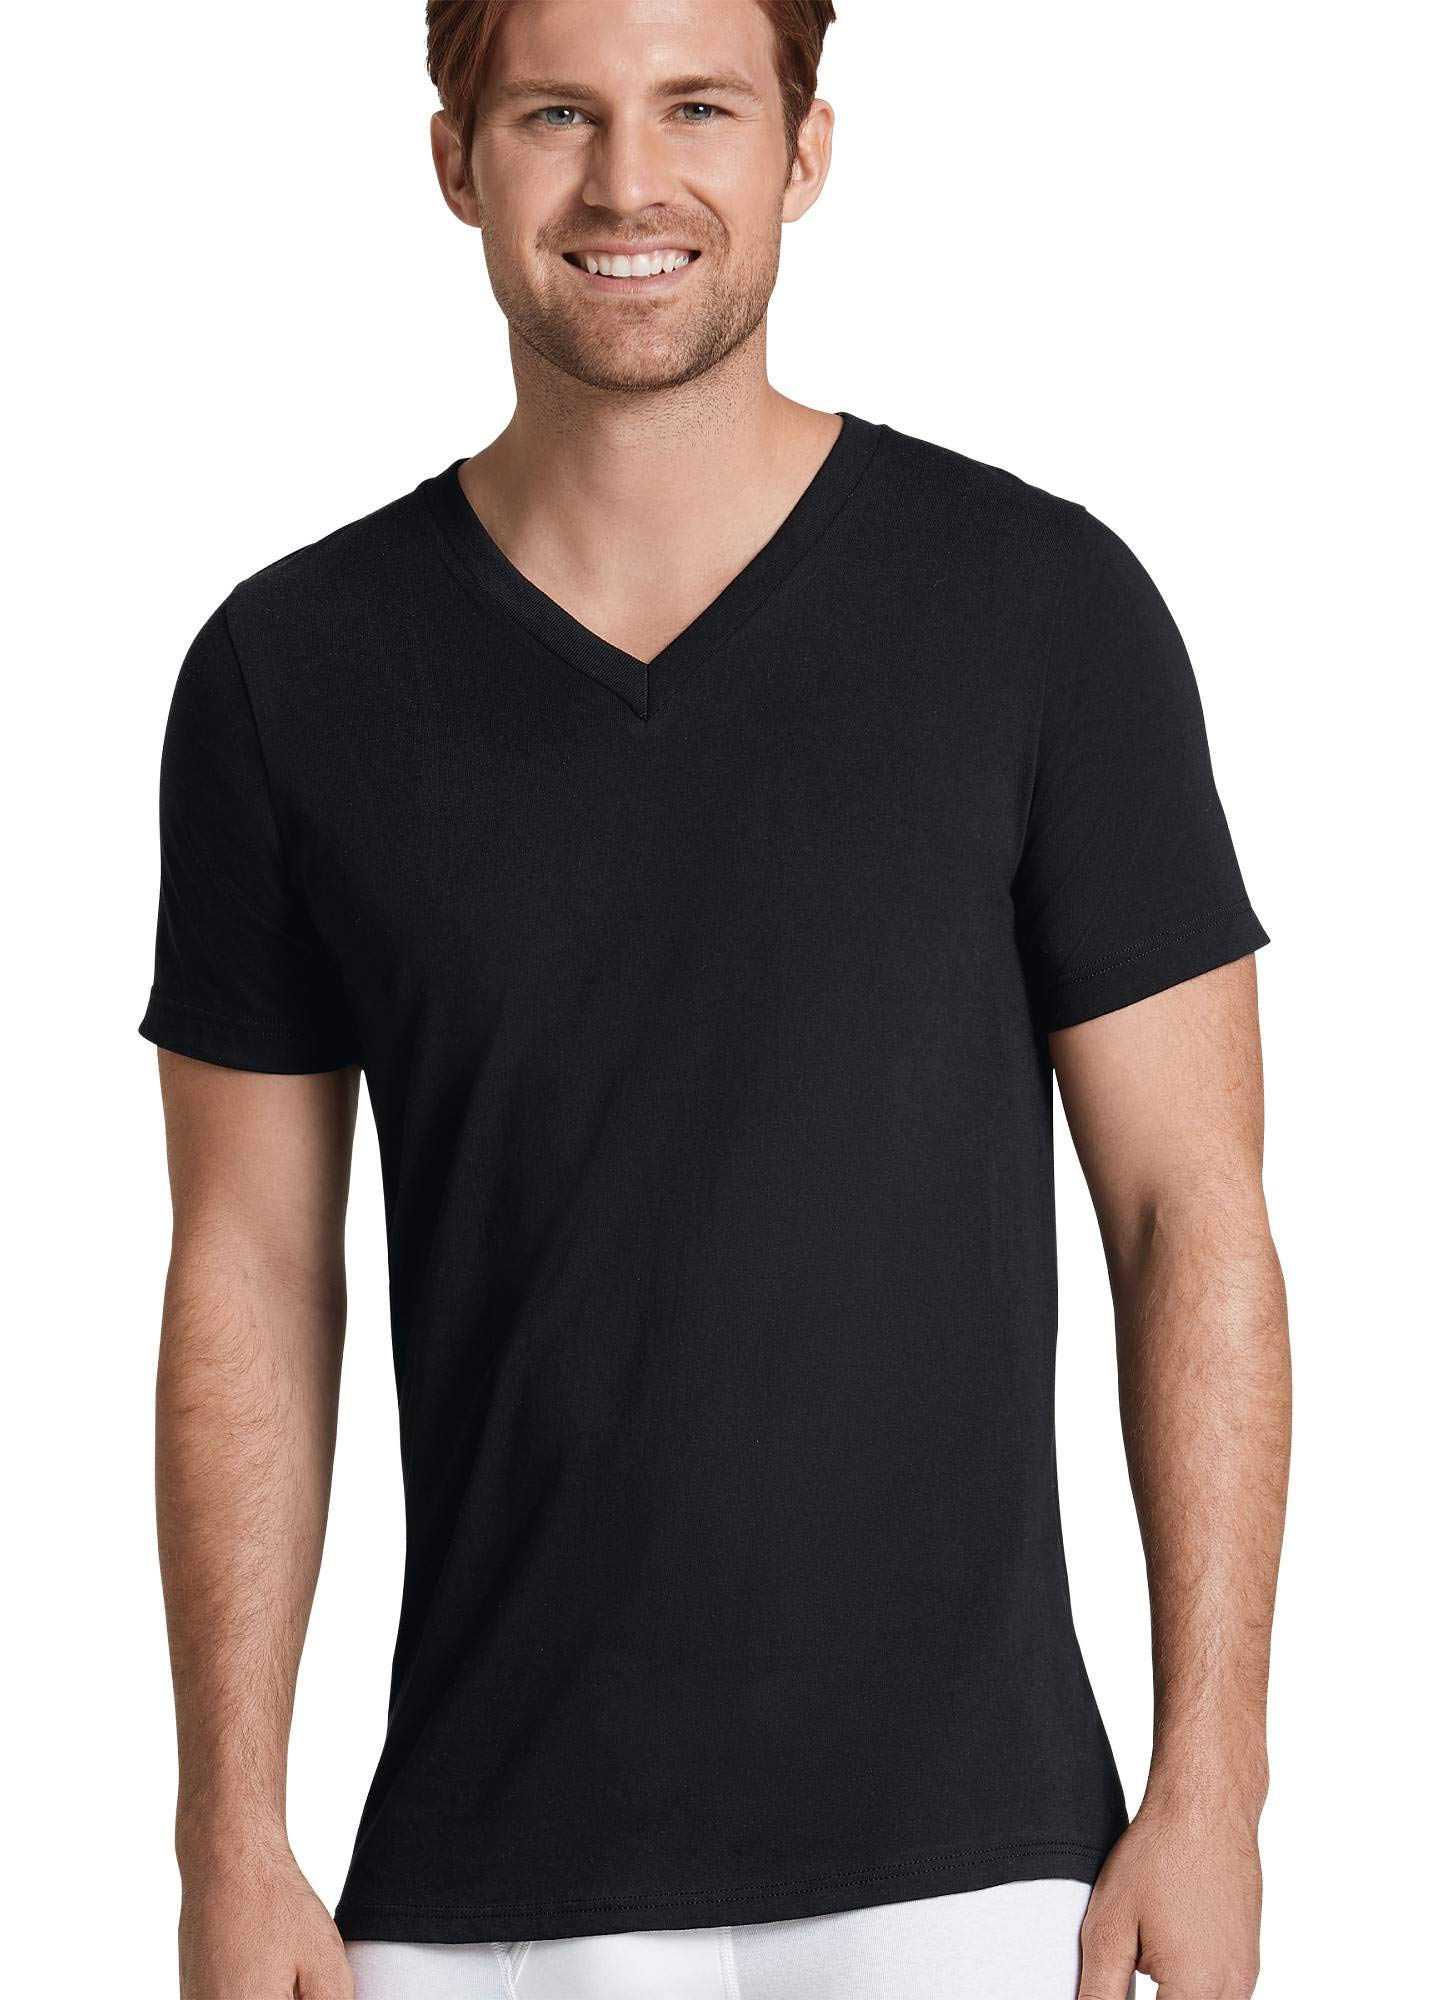 Jockey Men's T-Shirts Classic V-Neck T-Shirt - 6 Pack, Black, XL by Jockey